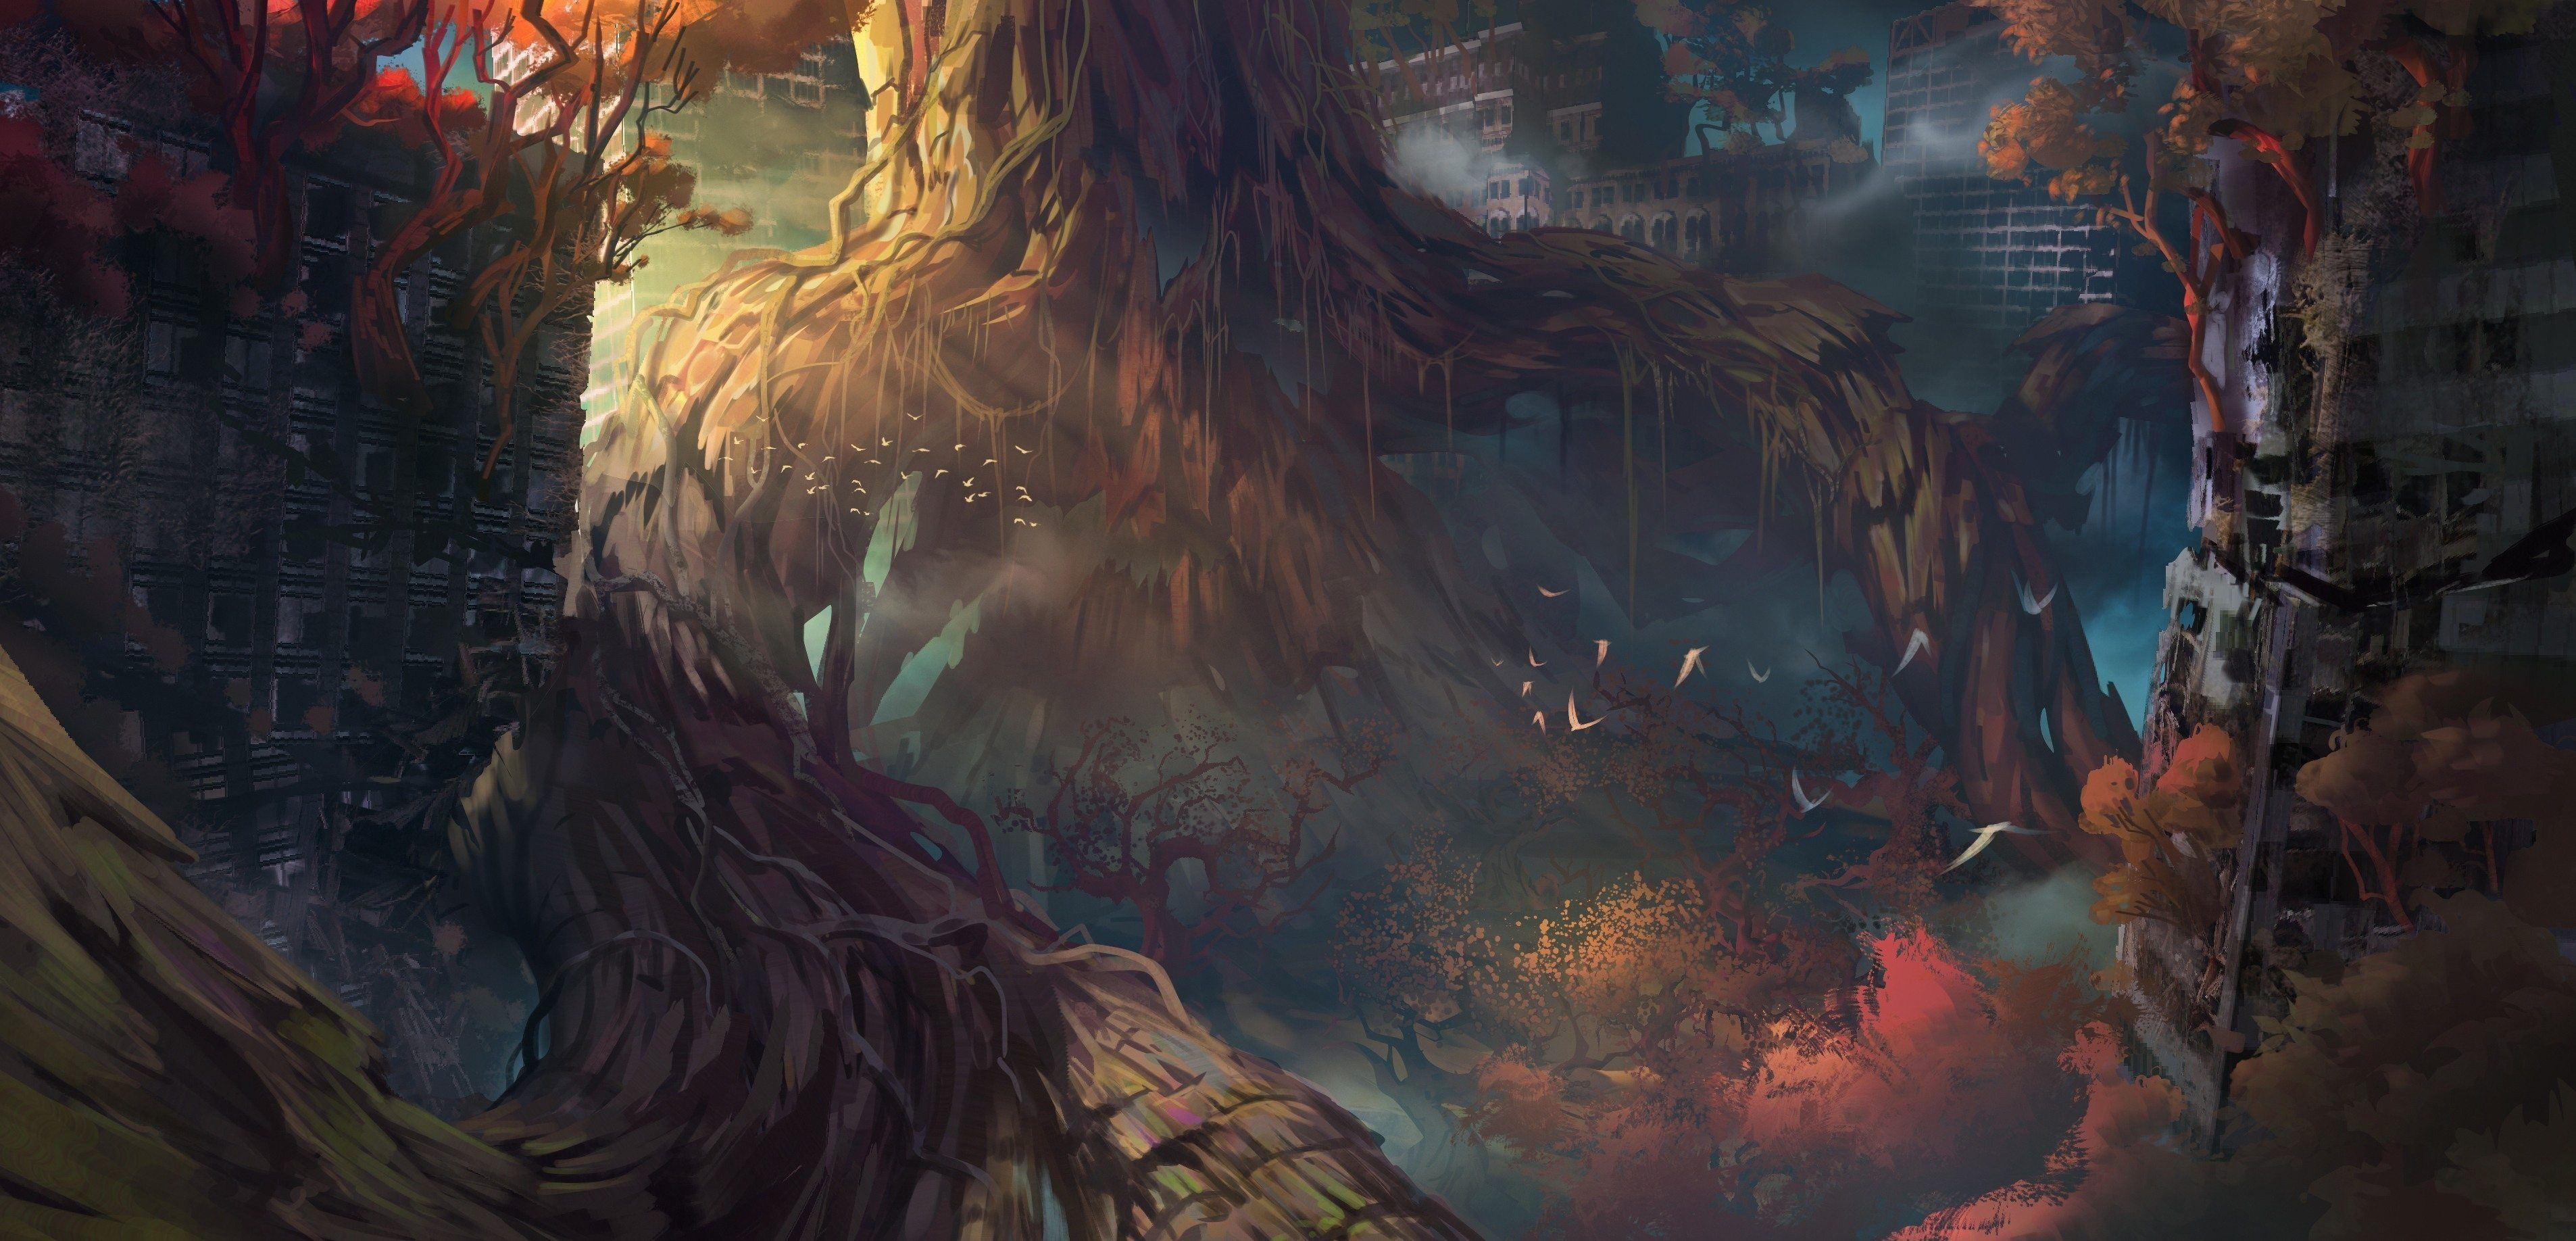 Pin By Games On Darksiders 3 Star Wars Concept Art Star Wars